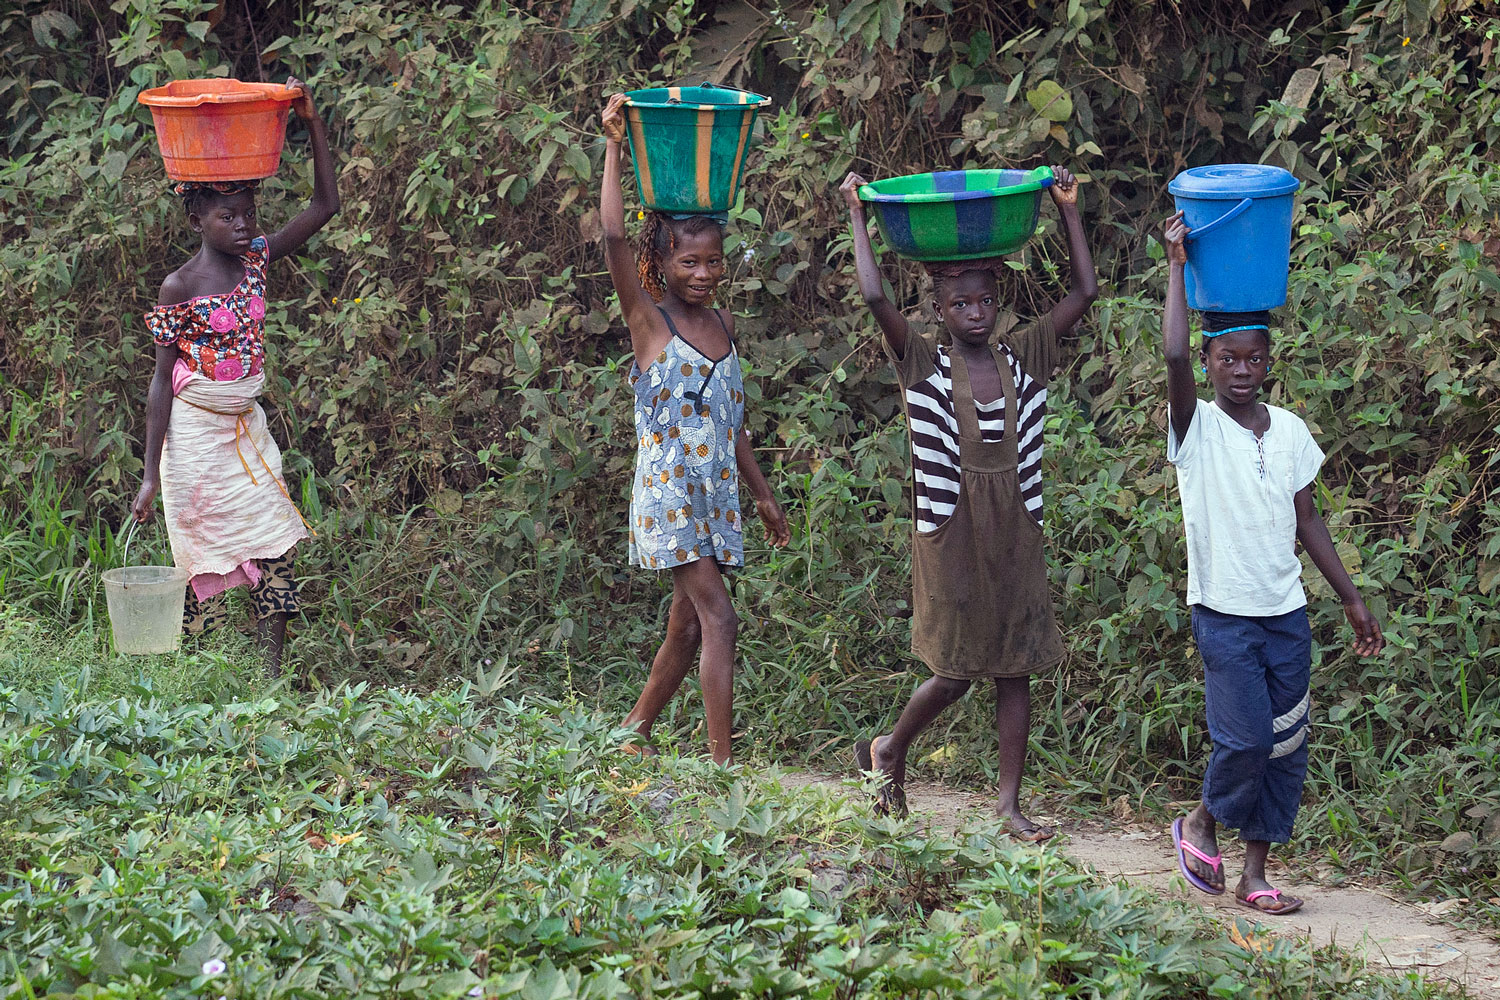 It is often young girls who are called to forgo their education so they can provide water for their families.